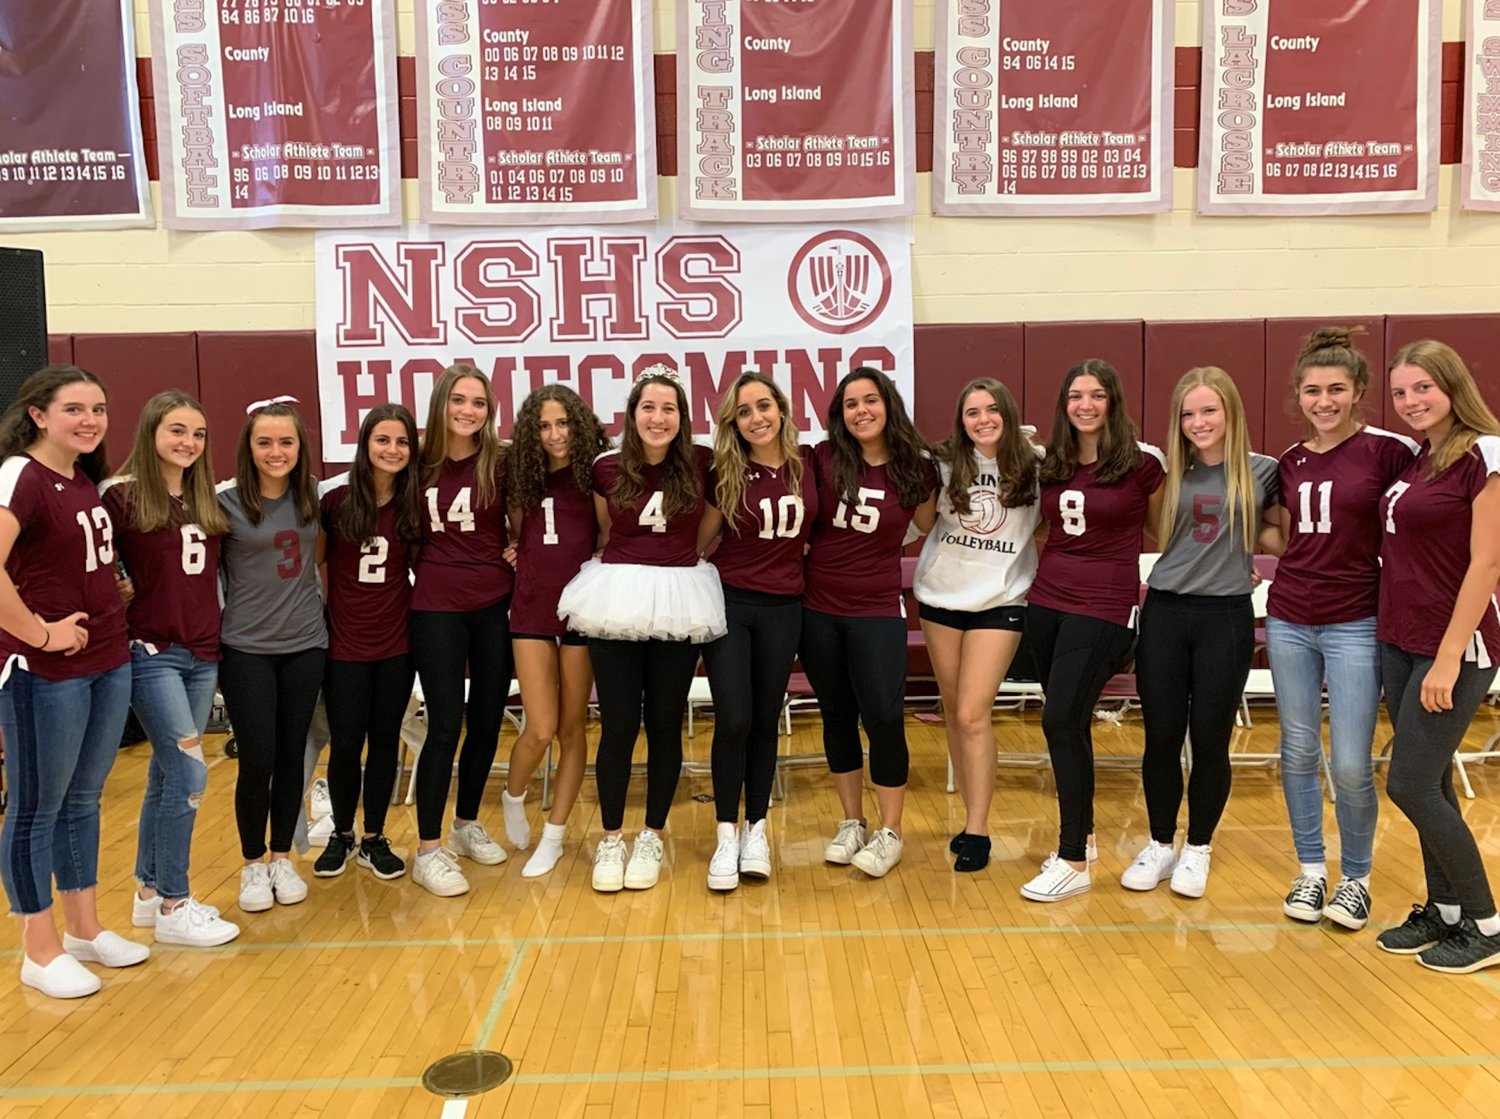 The North Shore High School volleyball team is looking forward to competing this March, especially the 12 seniors returning from last year's team.